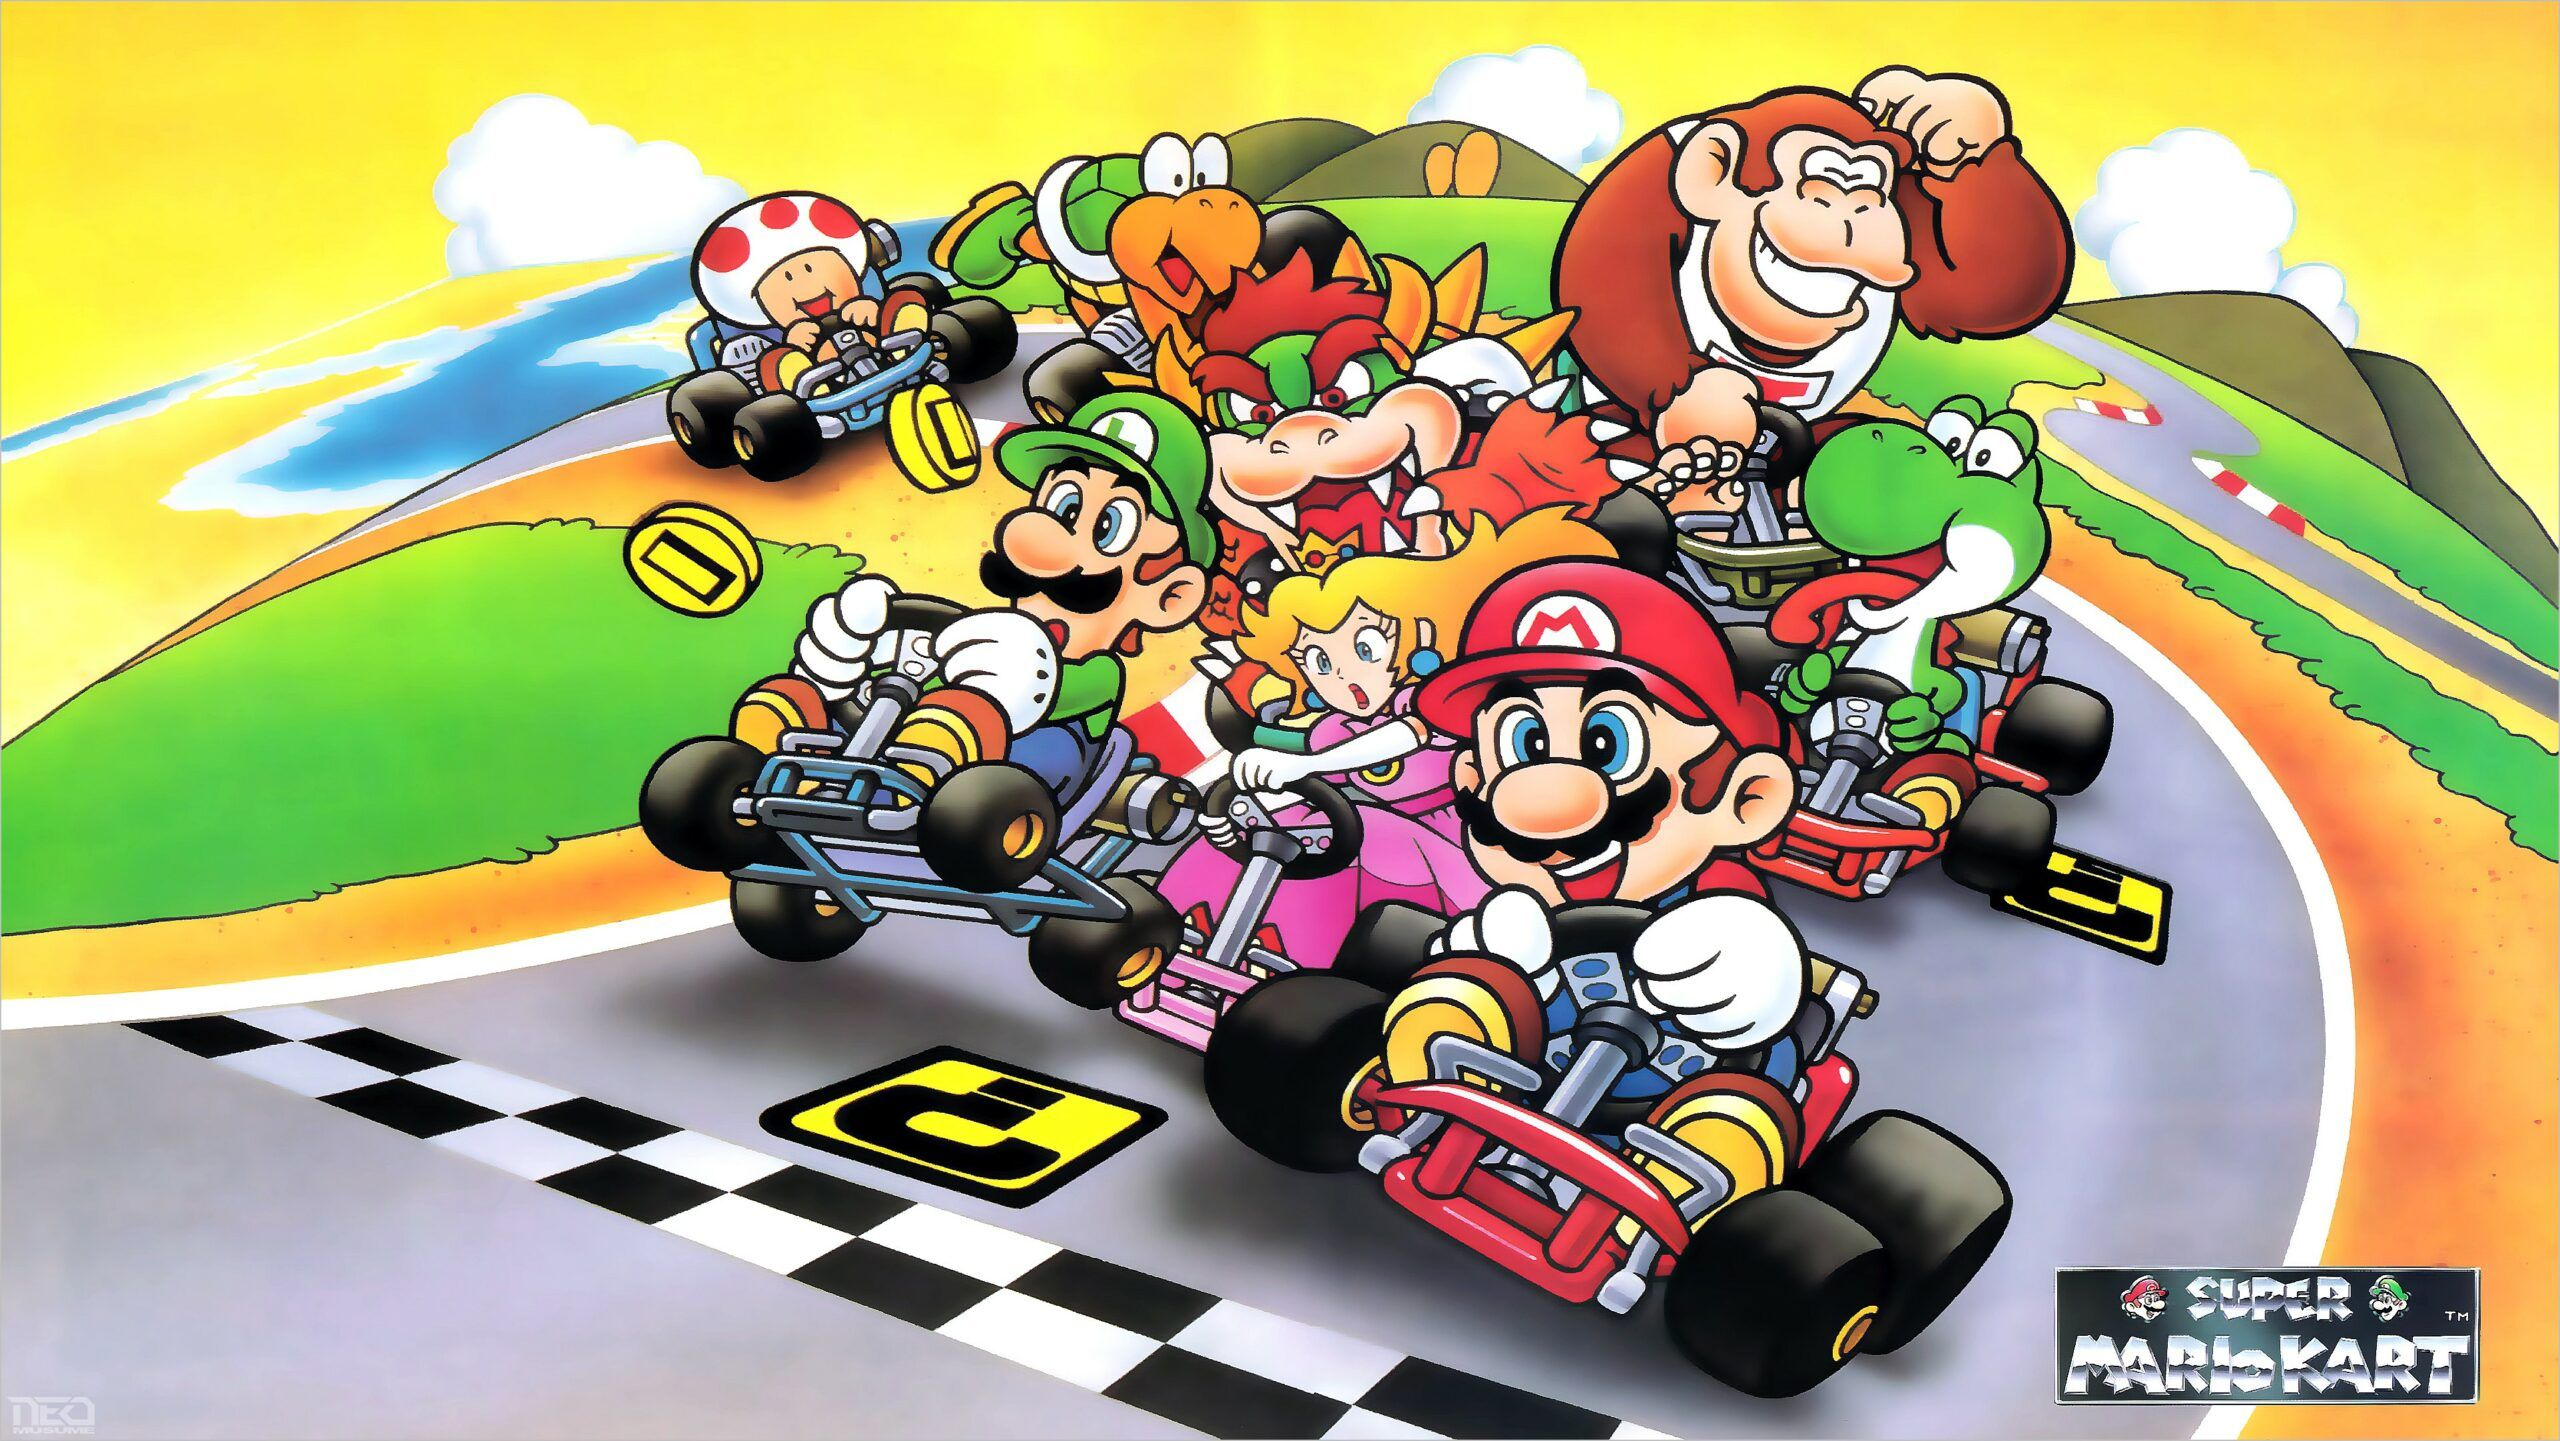 Best 4k Snes Wallpaper In 2020 Mario Kart Mario Kart Games